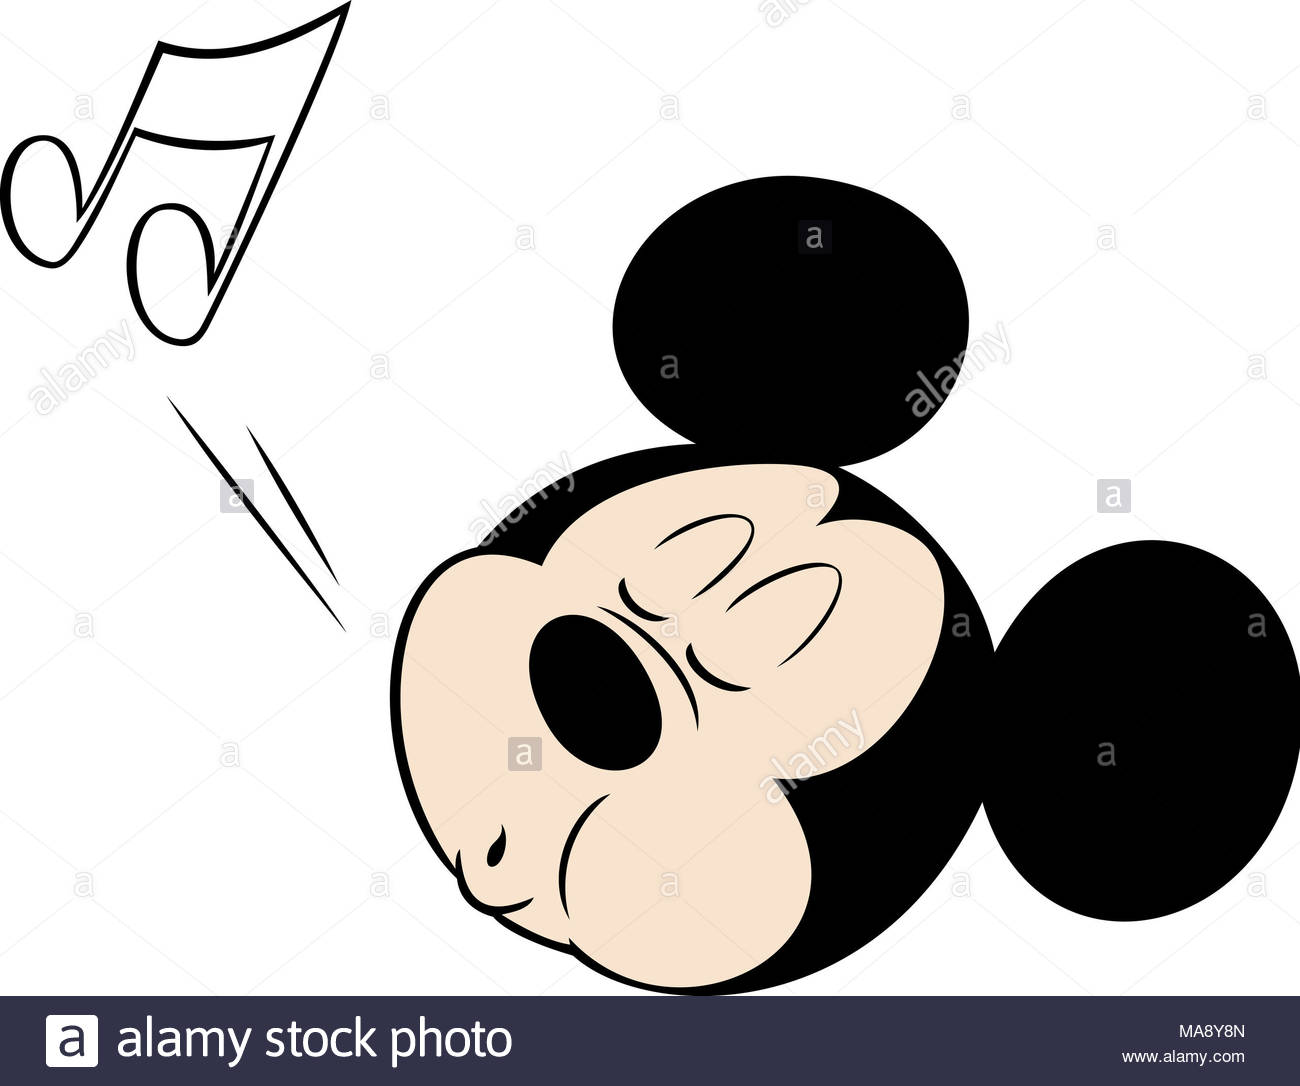 Mickey Mouse Head Character Cartoon Whistling Illustration Stock